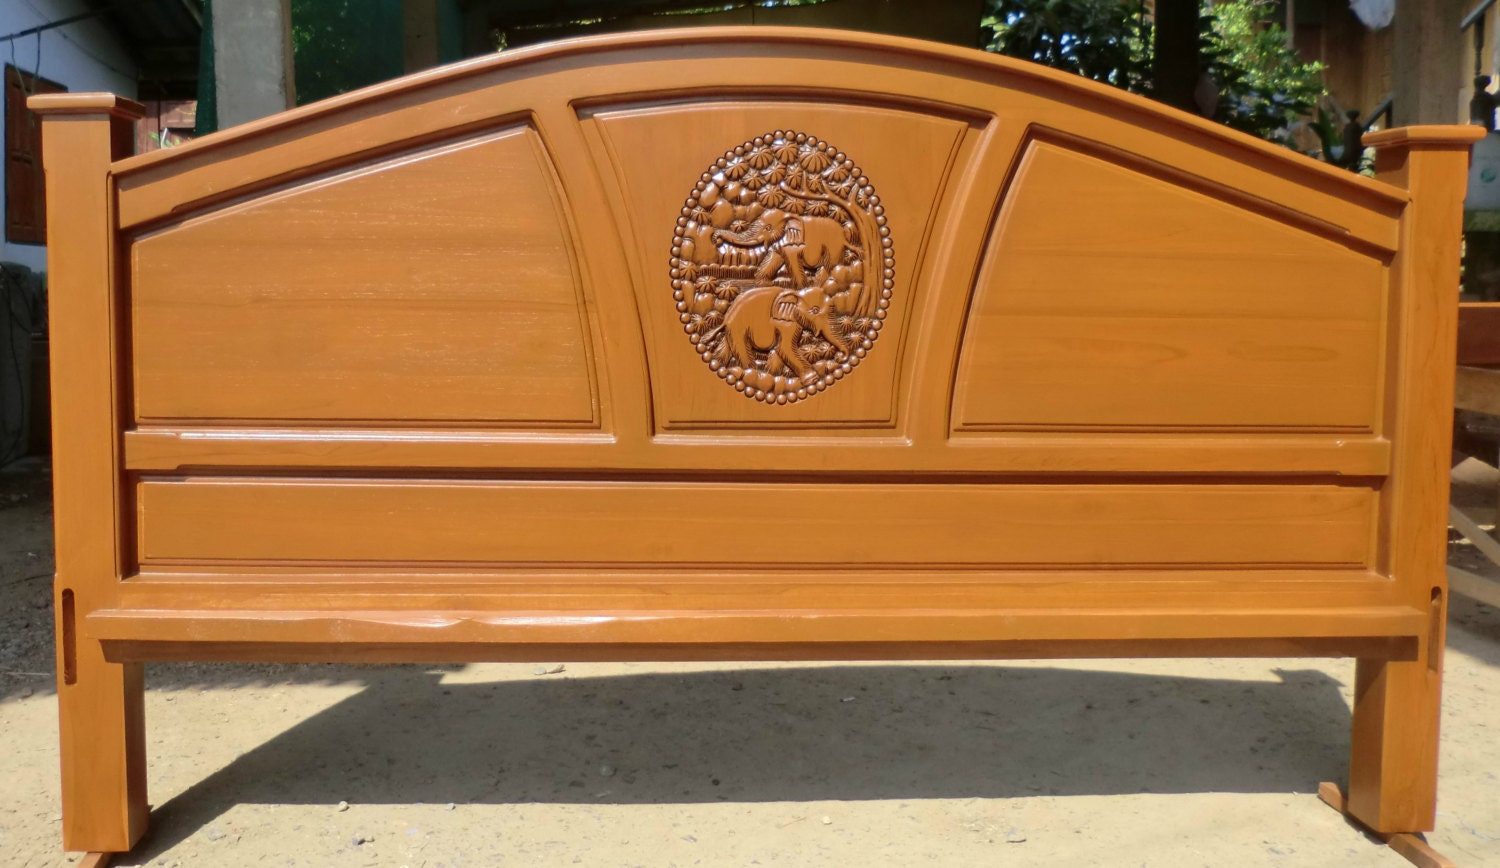 King & queen size carved teak wood headboard with elephants